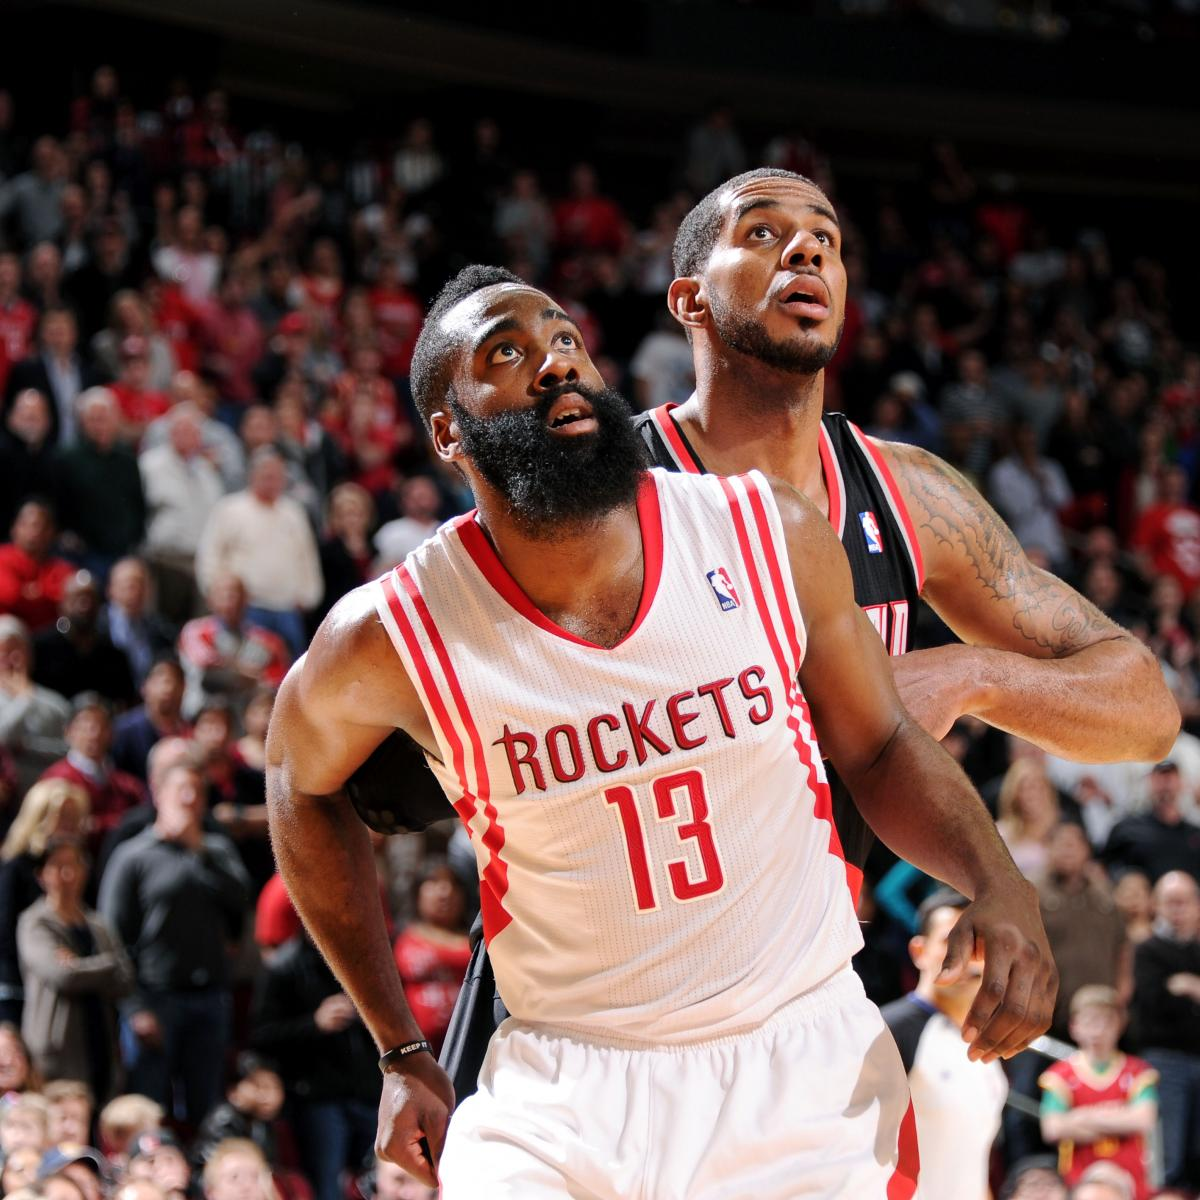 Houston Rockets Where To Watch The Upcoming Match Espn: Best- And Worst-Case Scenario Playoff Opponents For